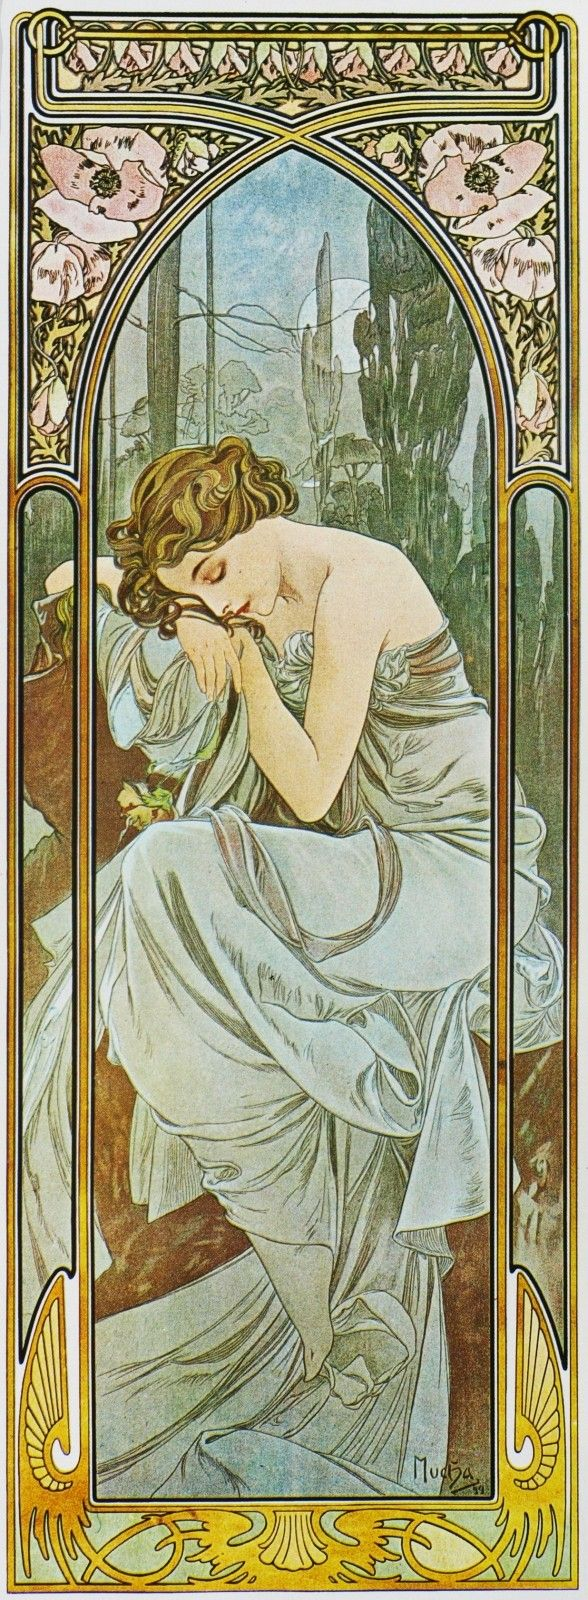 Alfons Mucha. 1899 Nights Rest. The Hours of the Day.